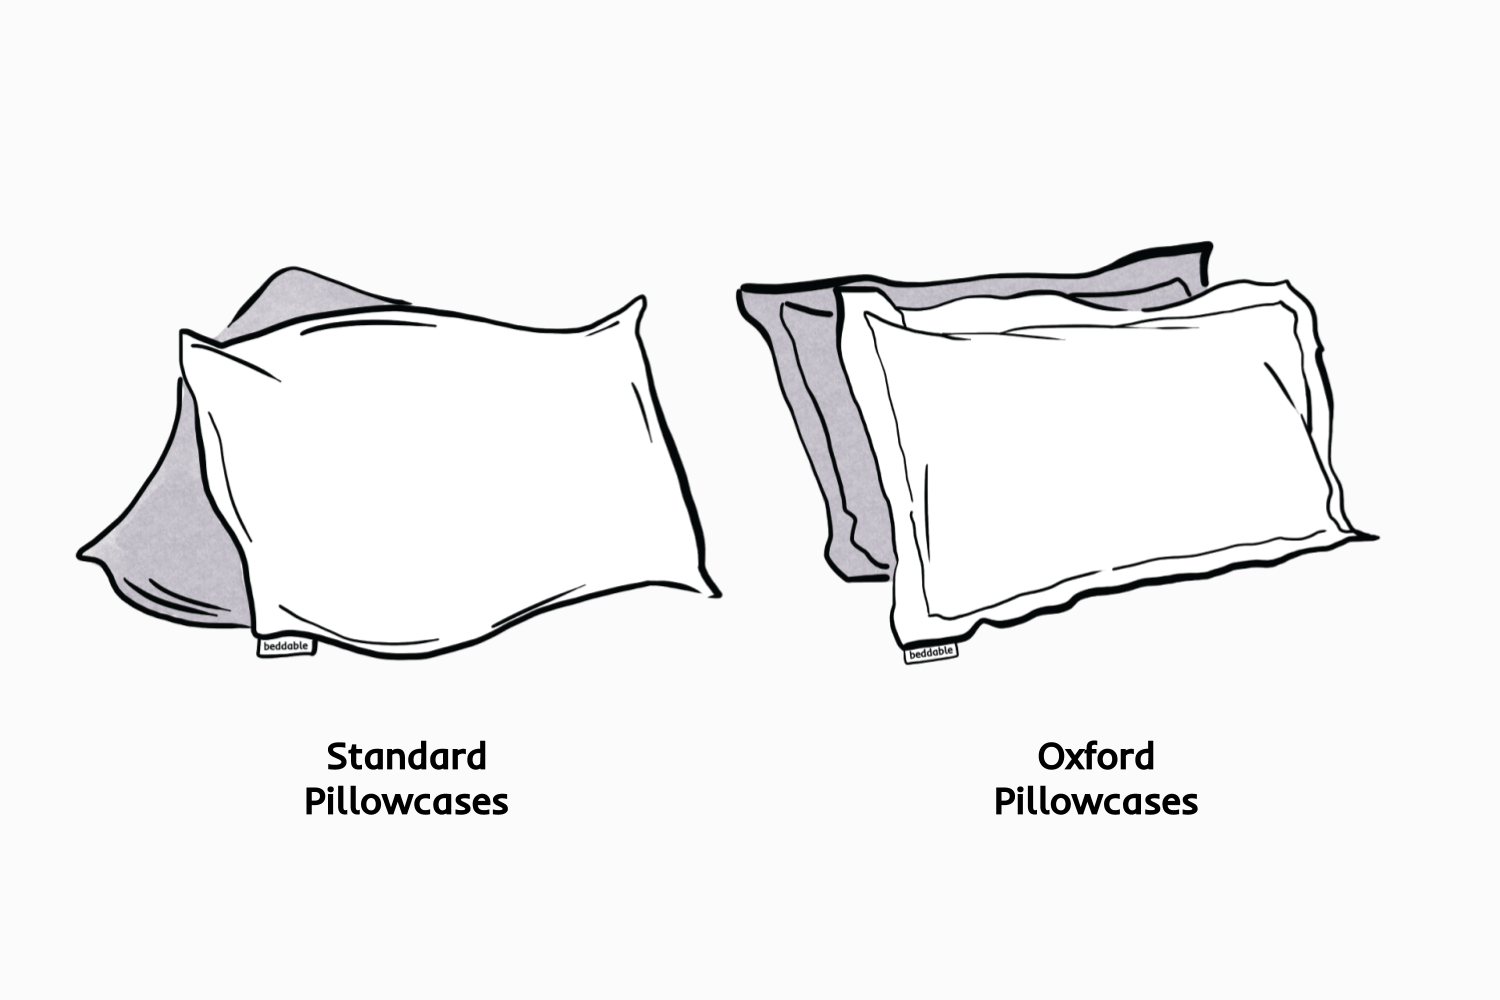 pillowcase types